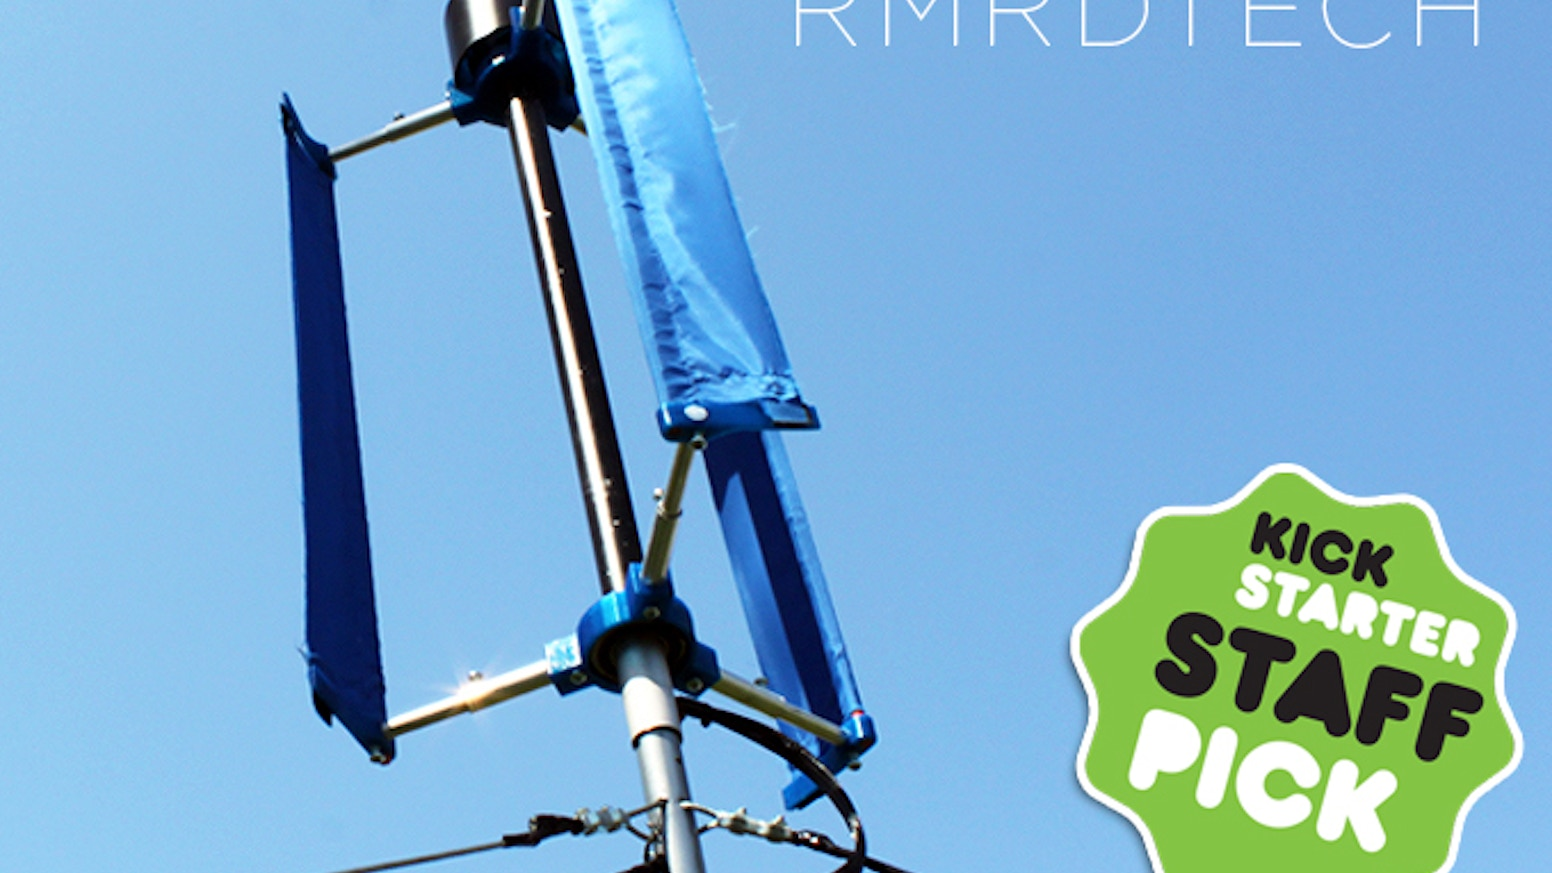 A Small Wind Turbine for a Big Difference by RMRDTECH